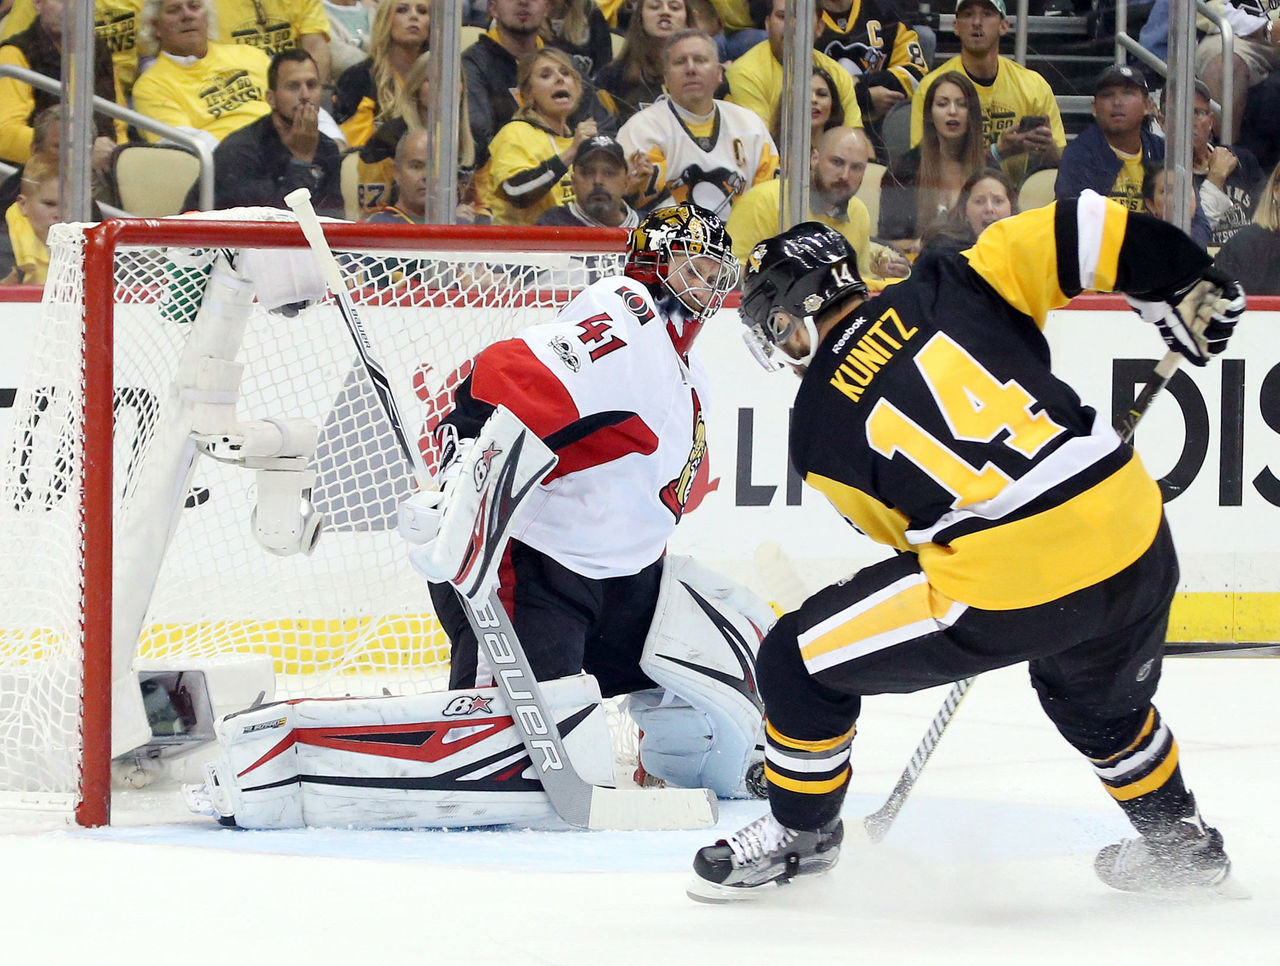 Cropped 2017 05 26t014628z 1580820429 nocid rtrmadp 3 nhl stanley cup playoffs ottawa senators at pittsburgh penguins